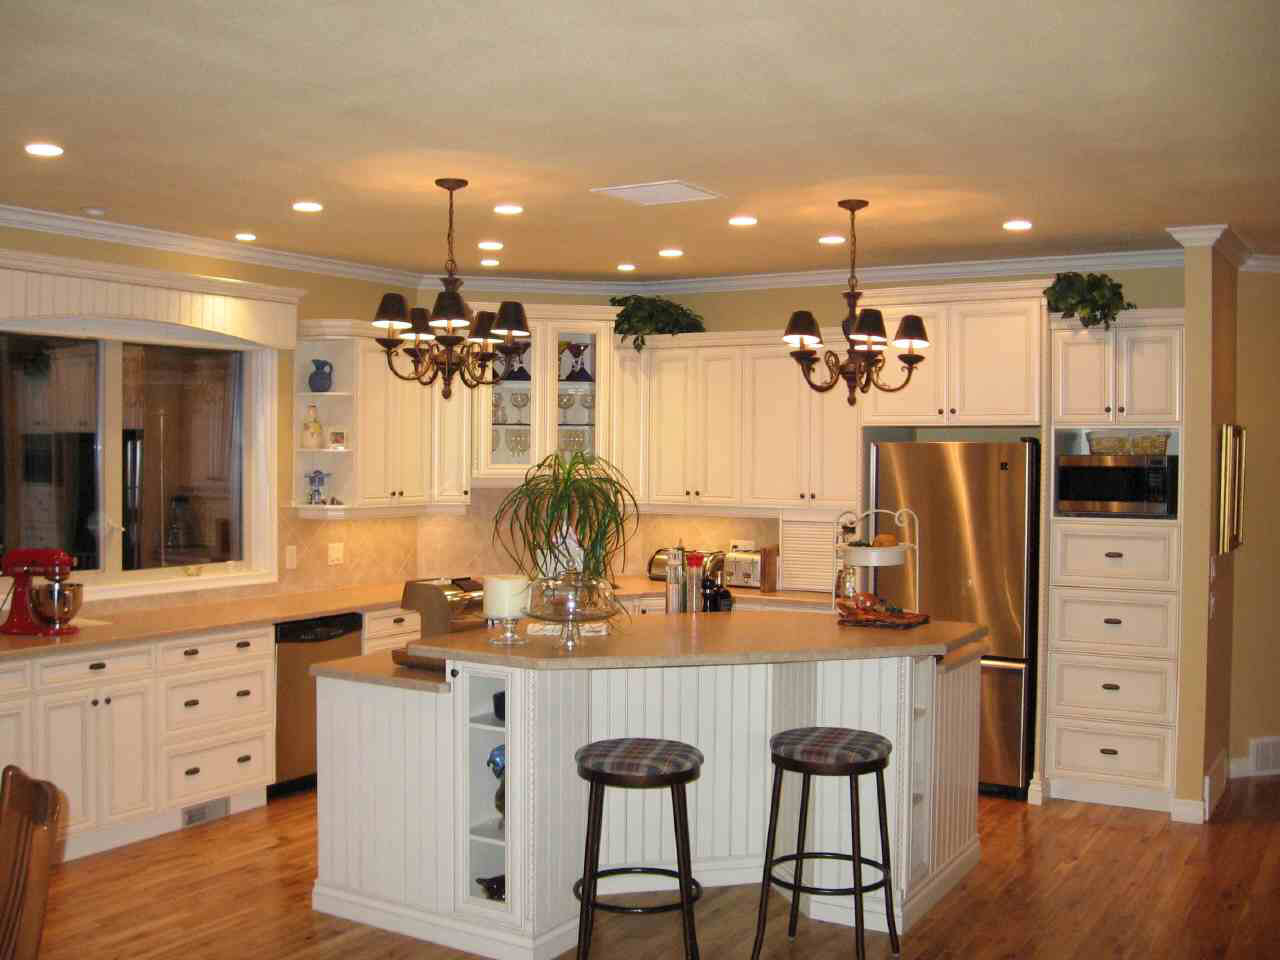 Peartreedesigns beautiful modern kitchen interiors for Kitchen interior decoration images